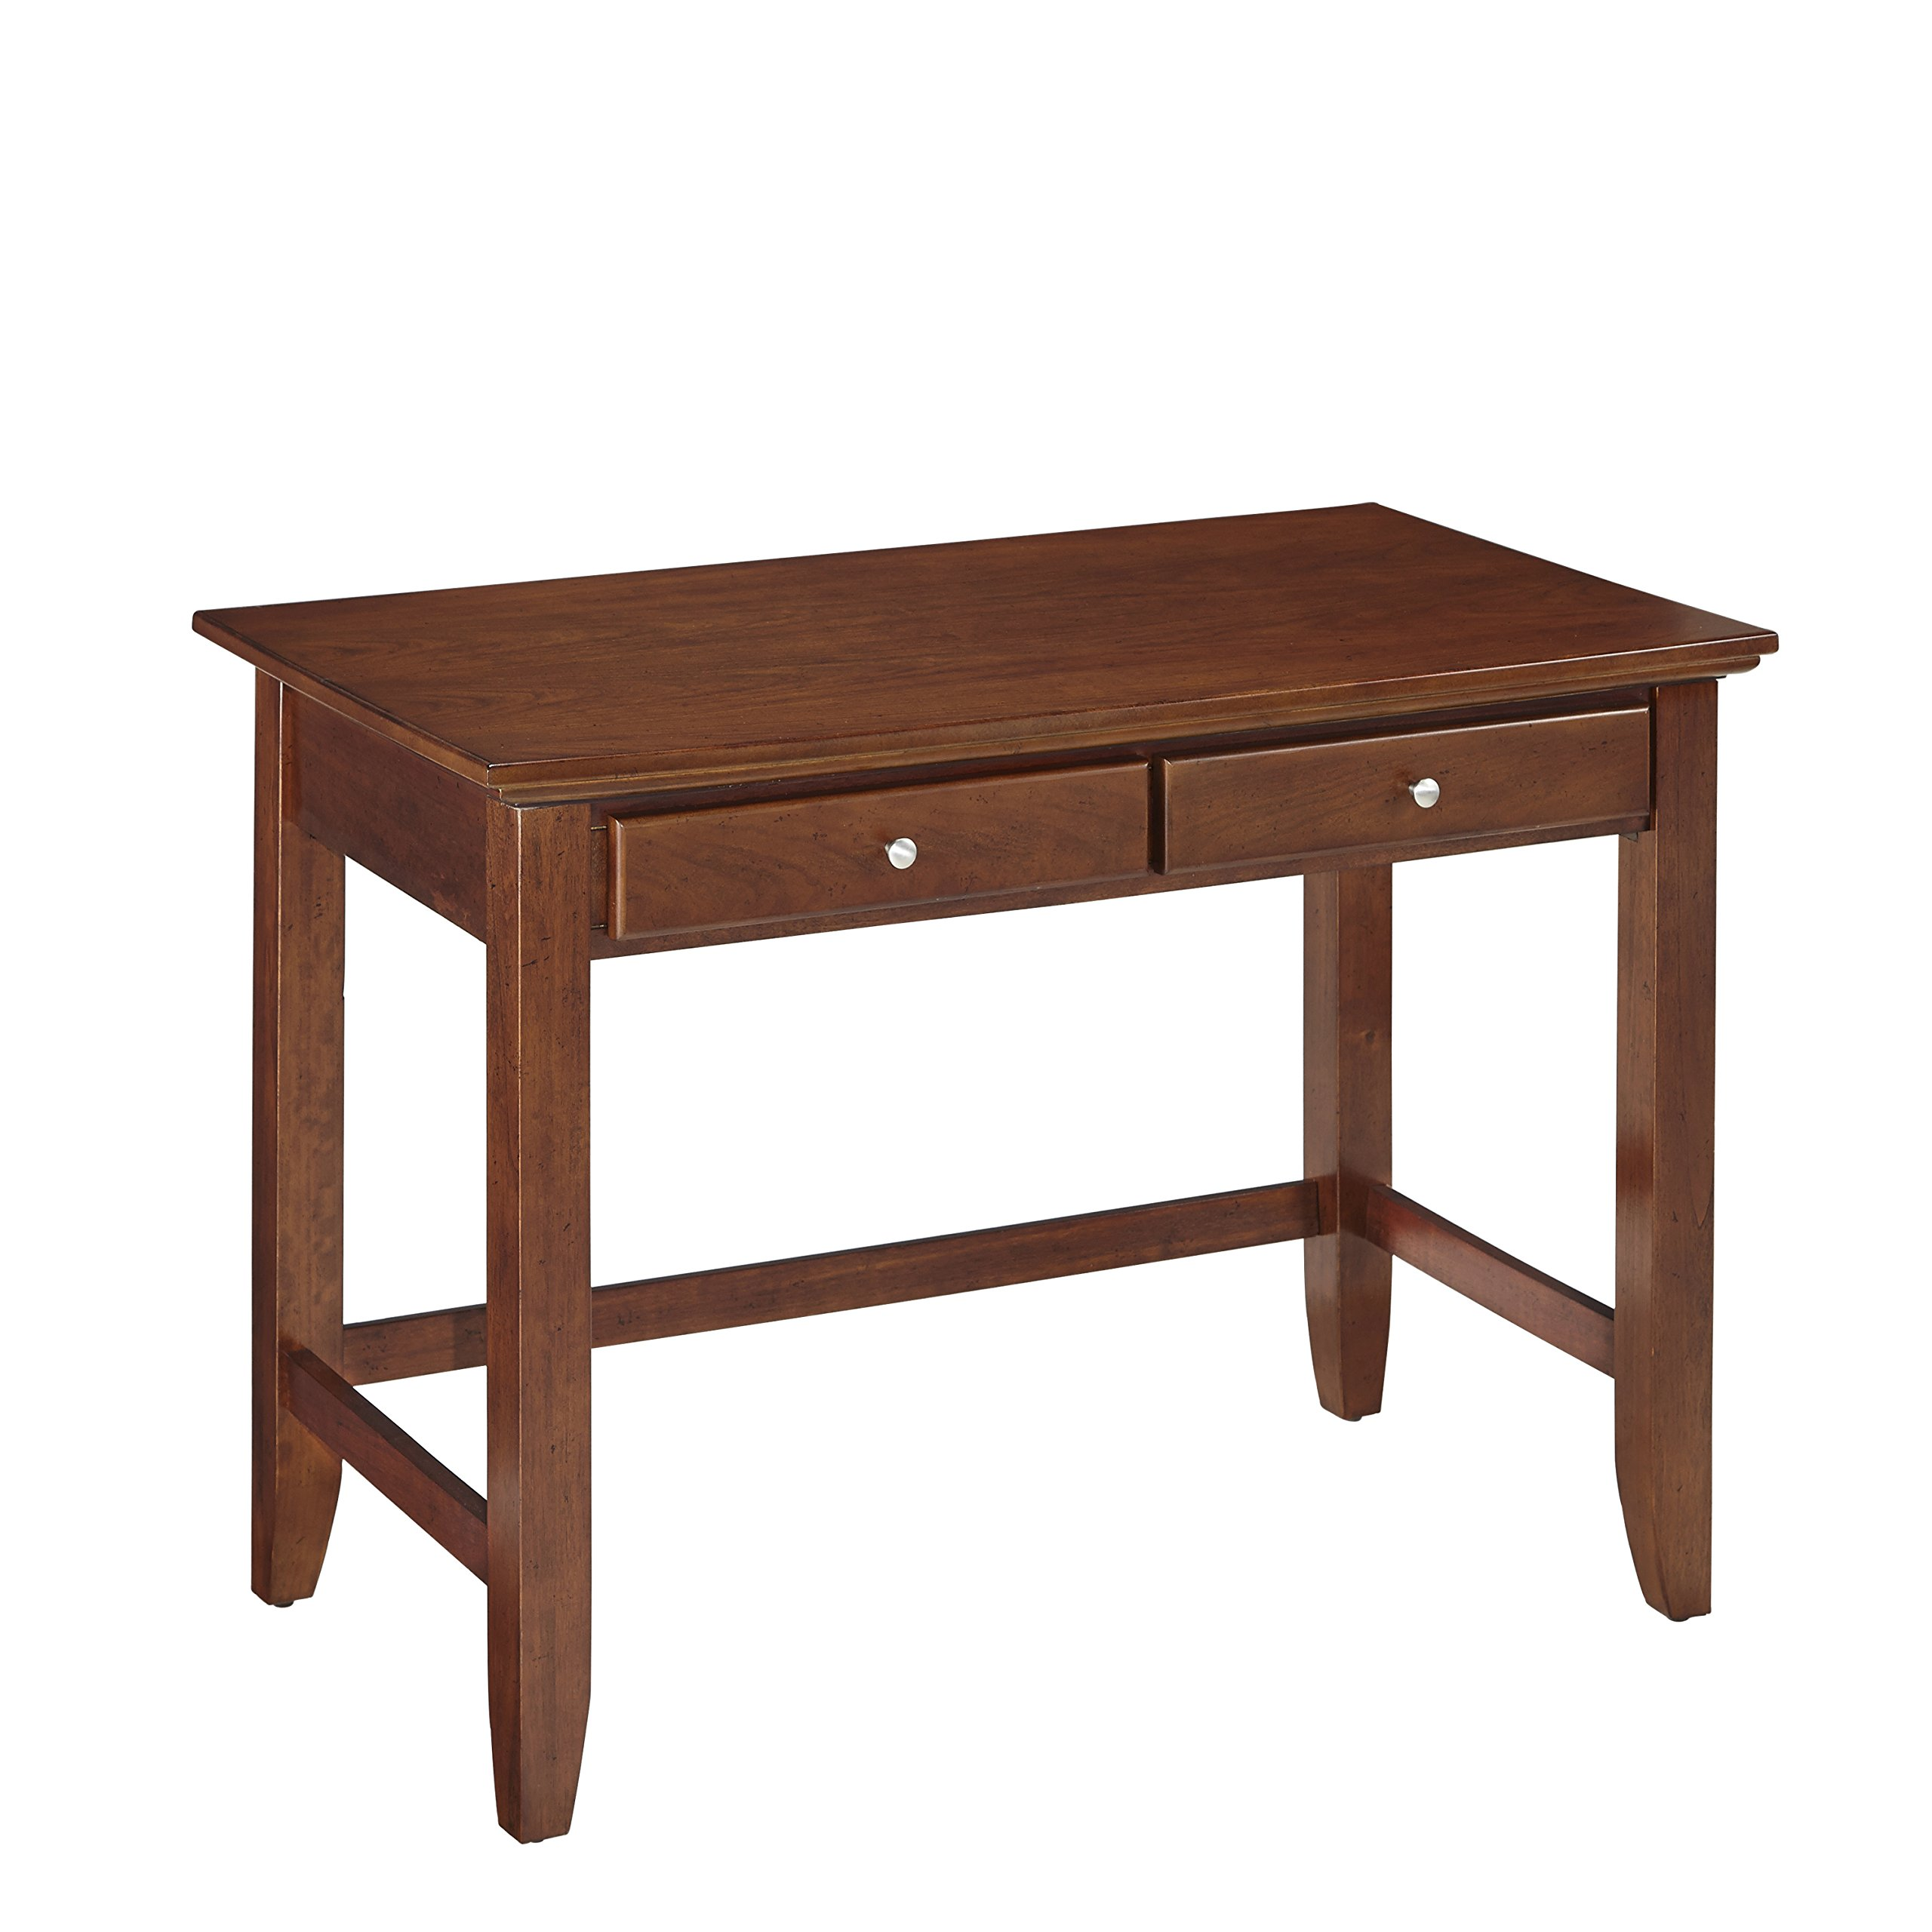 Home Styles Model  5529-16 Cherry Finish Chesapeake Student Desk by Home Styles